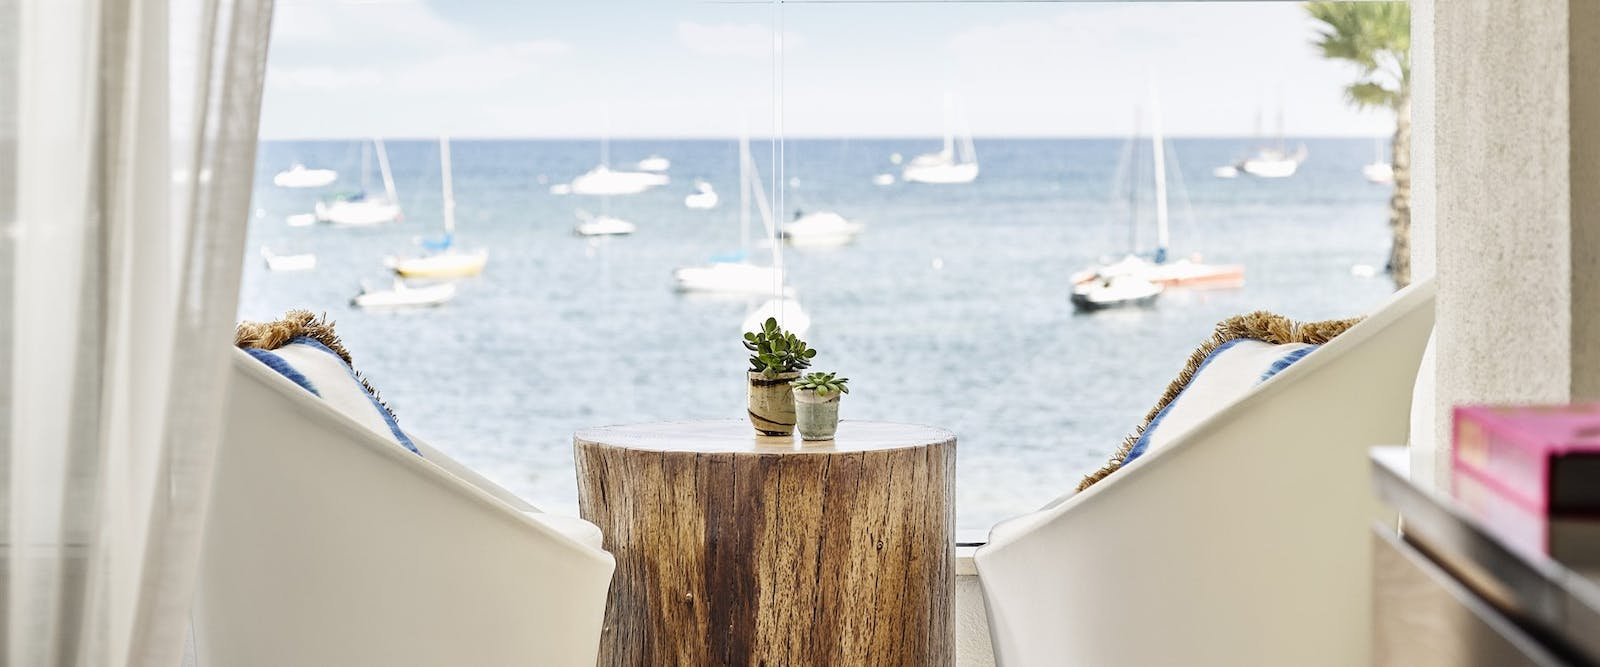 Deluxe Sea View Balcony at Nobu Hotel Ibiza Bay, Ibiza, Spain